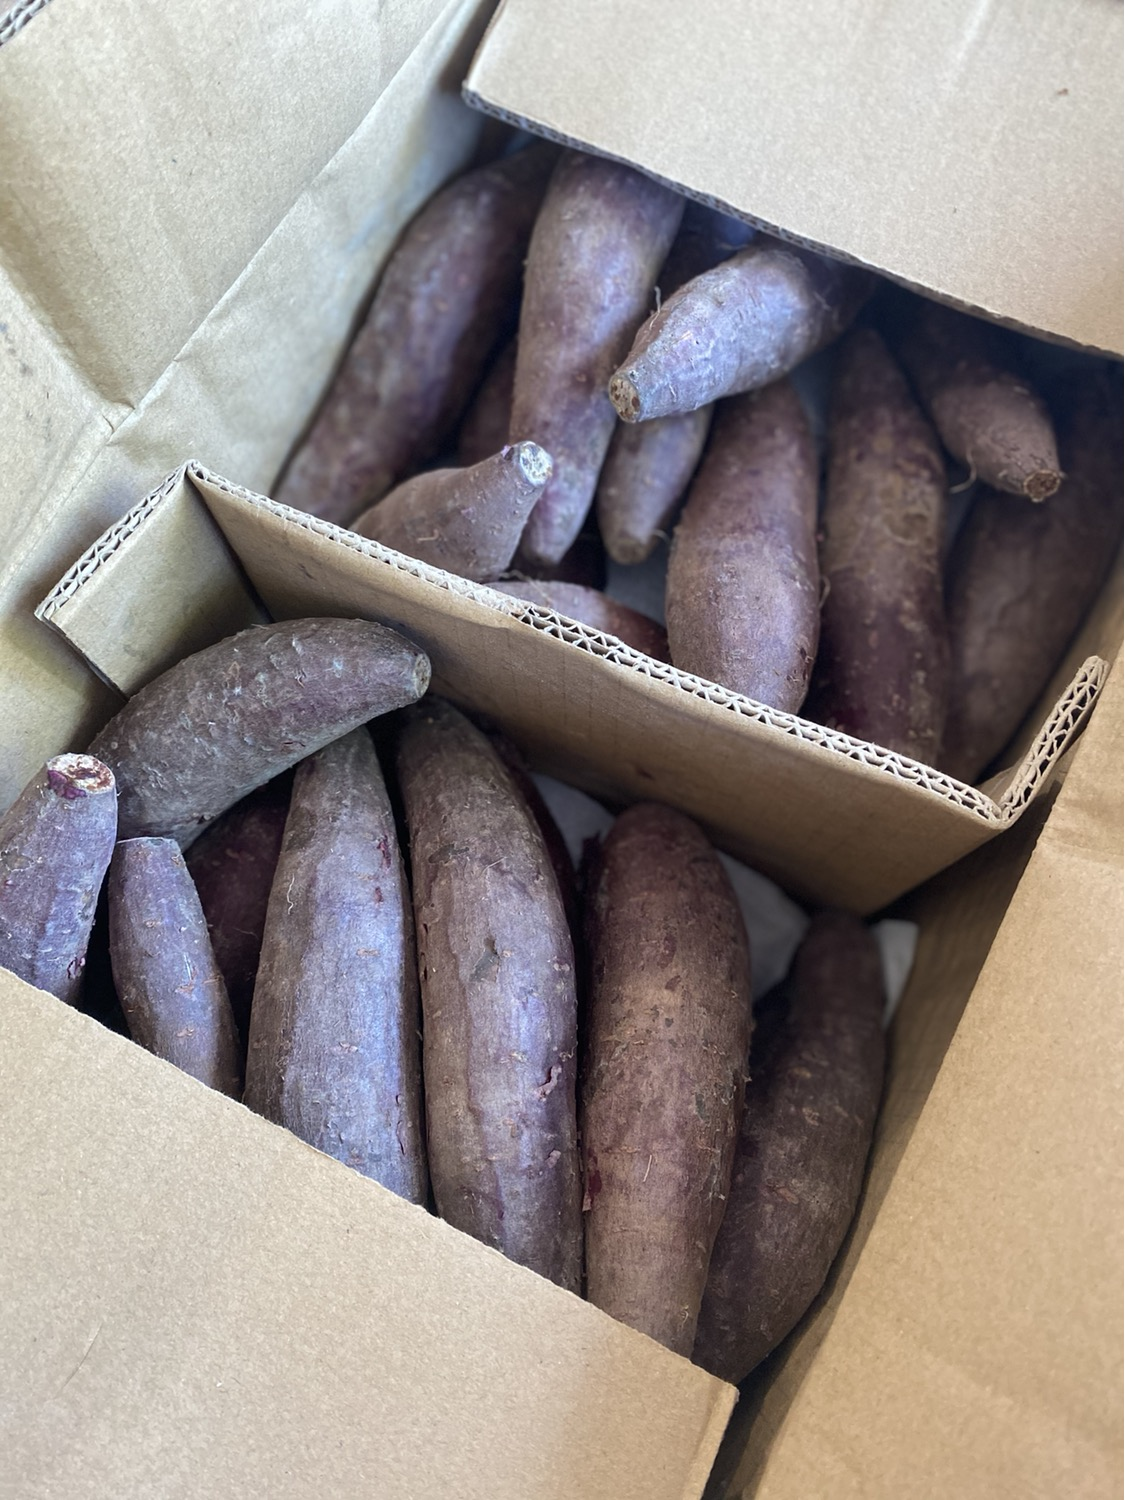 Purple Sweet Potato 500g紫薯(will back in Tuesday)